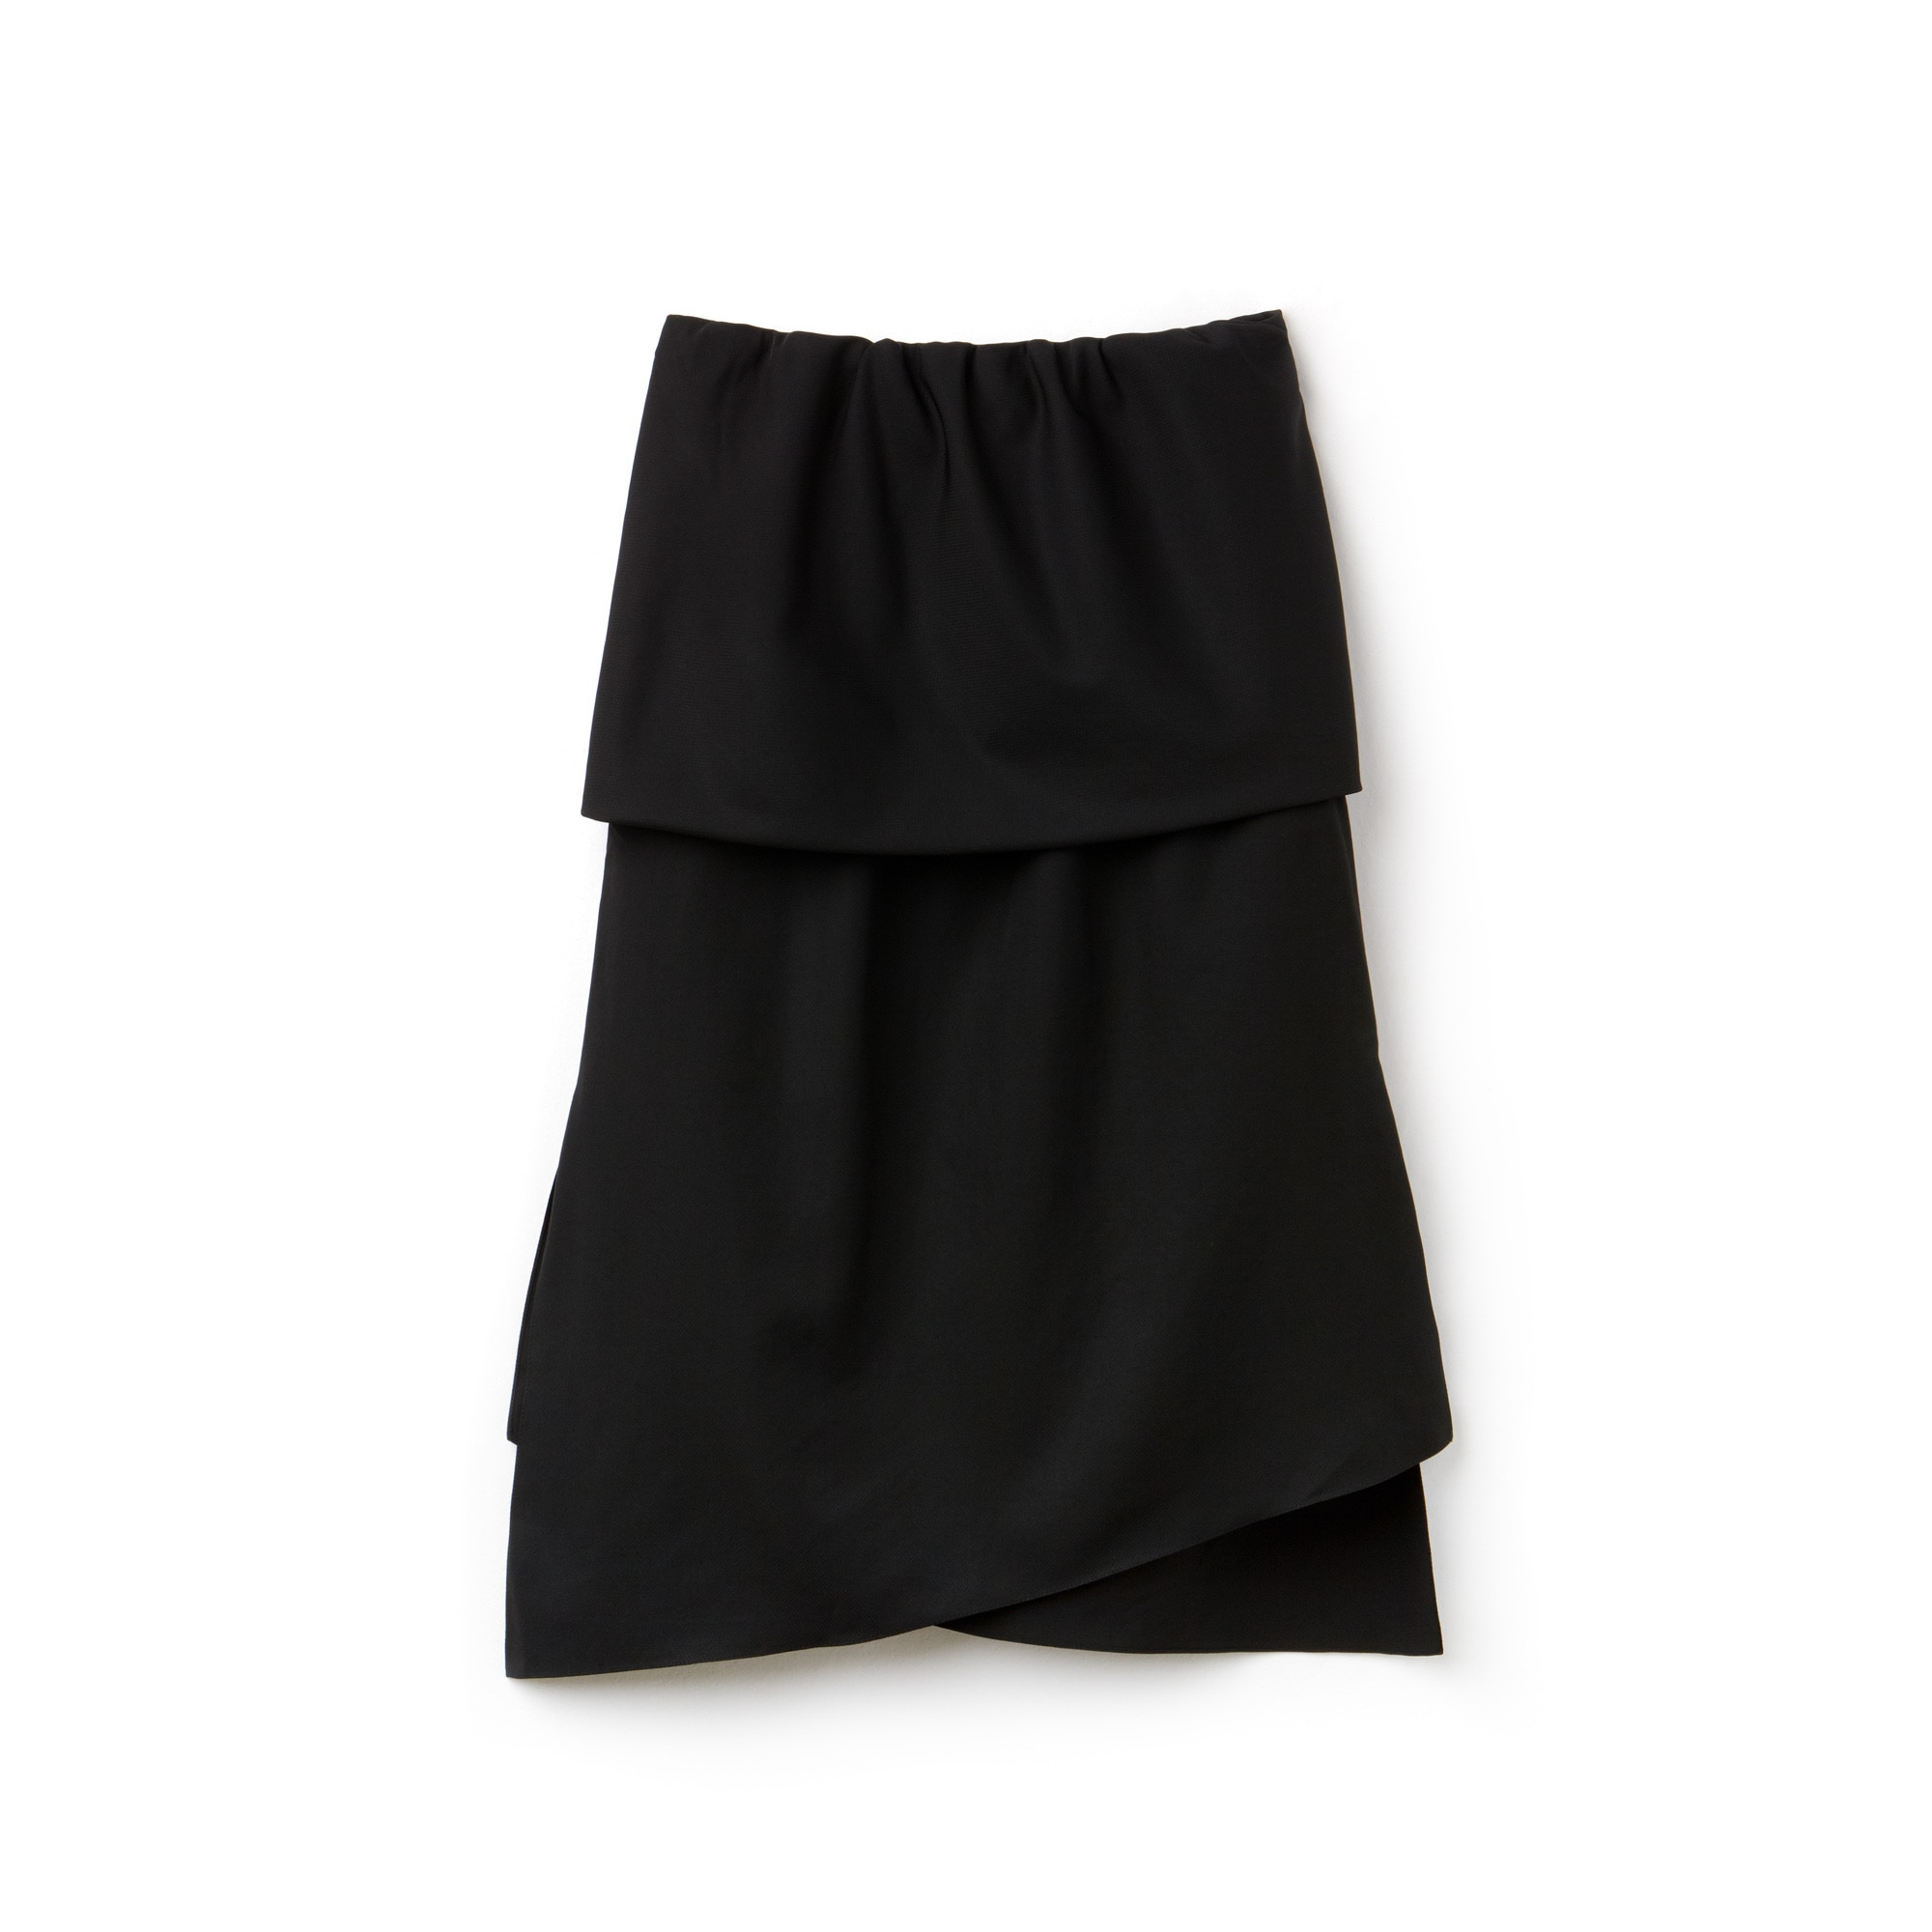 Women's Fashion Show Asymmetrical Twisted Tech Taffeta Skirt